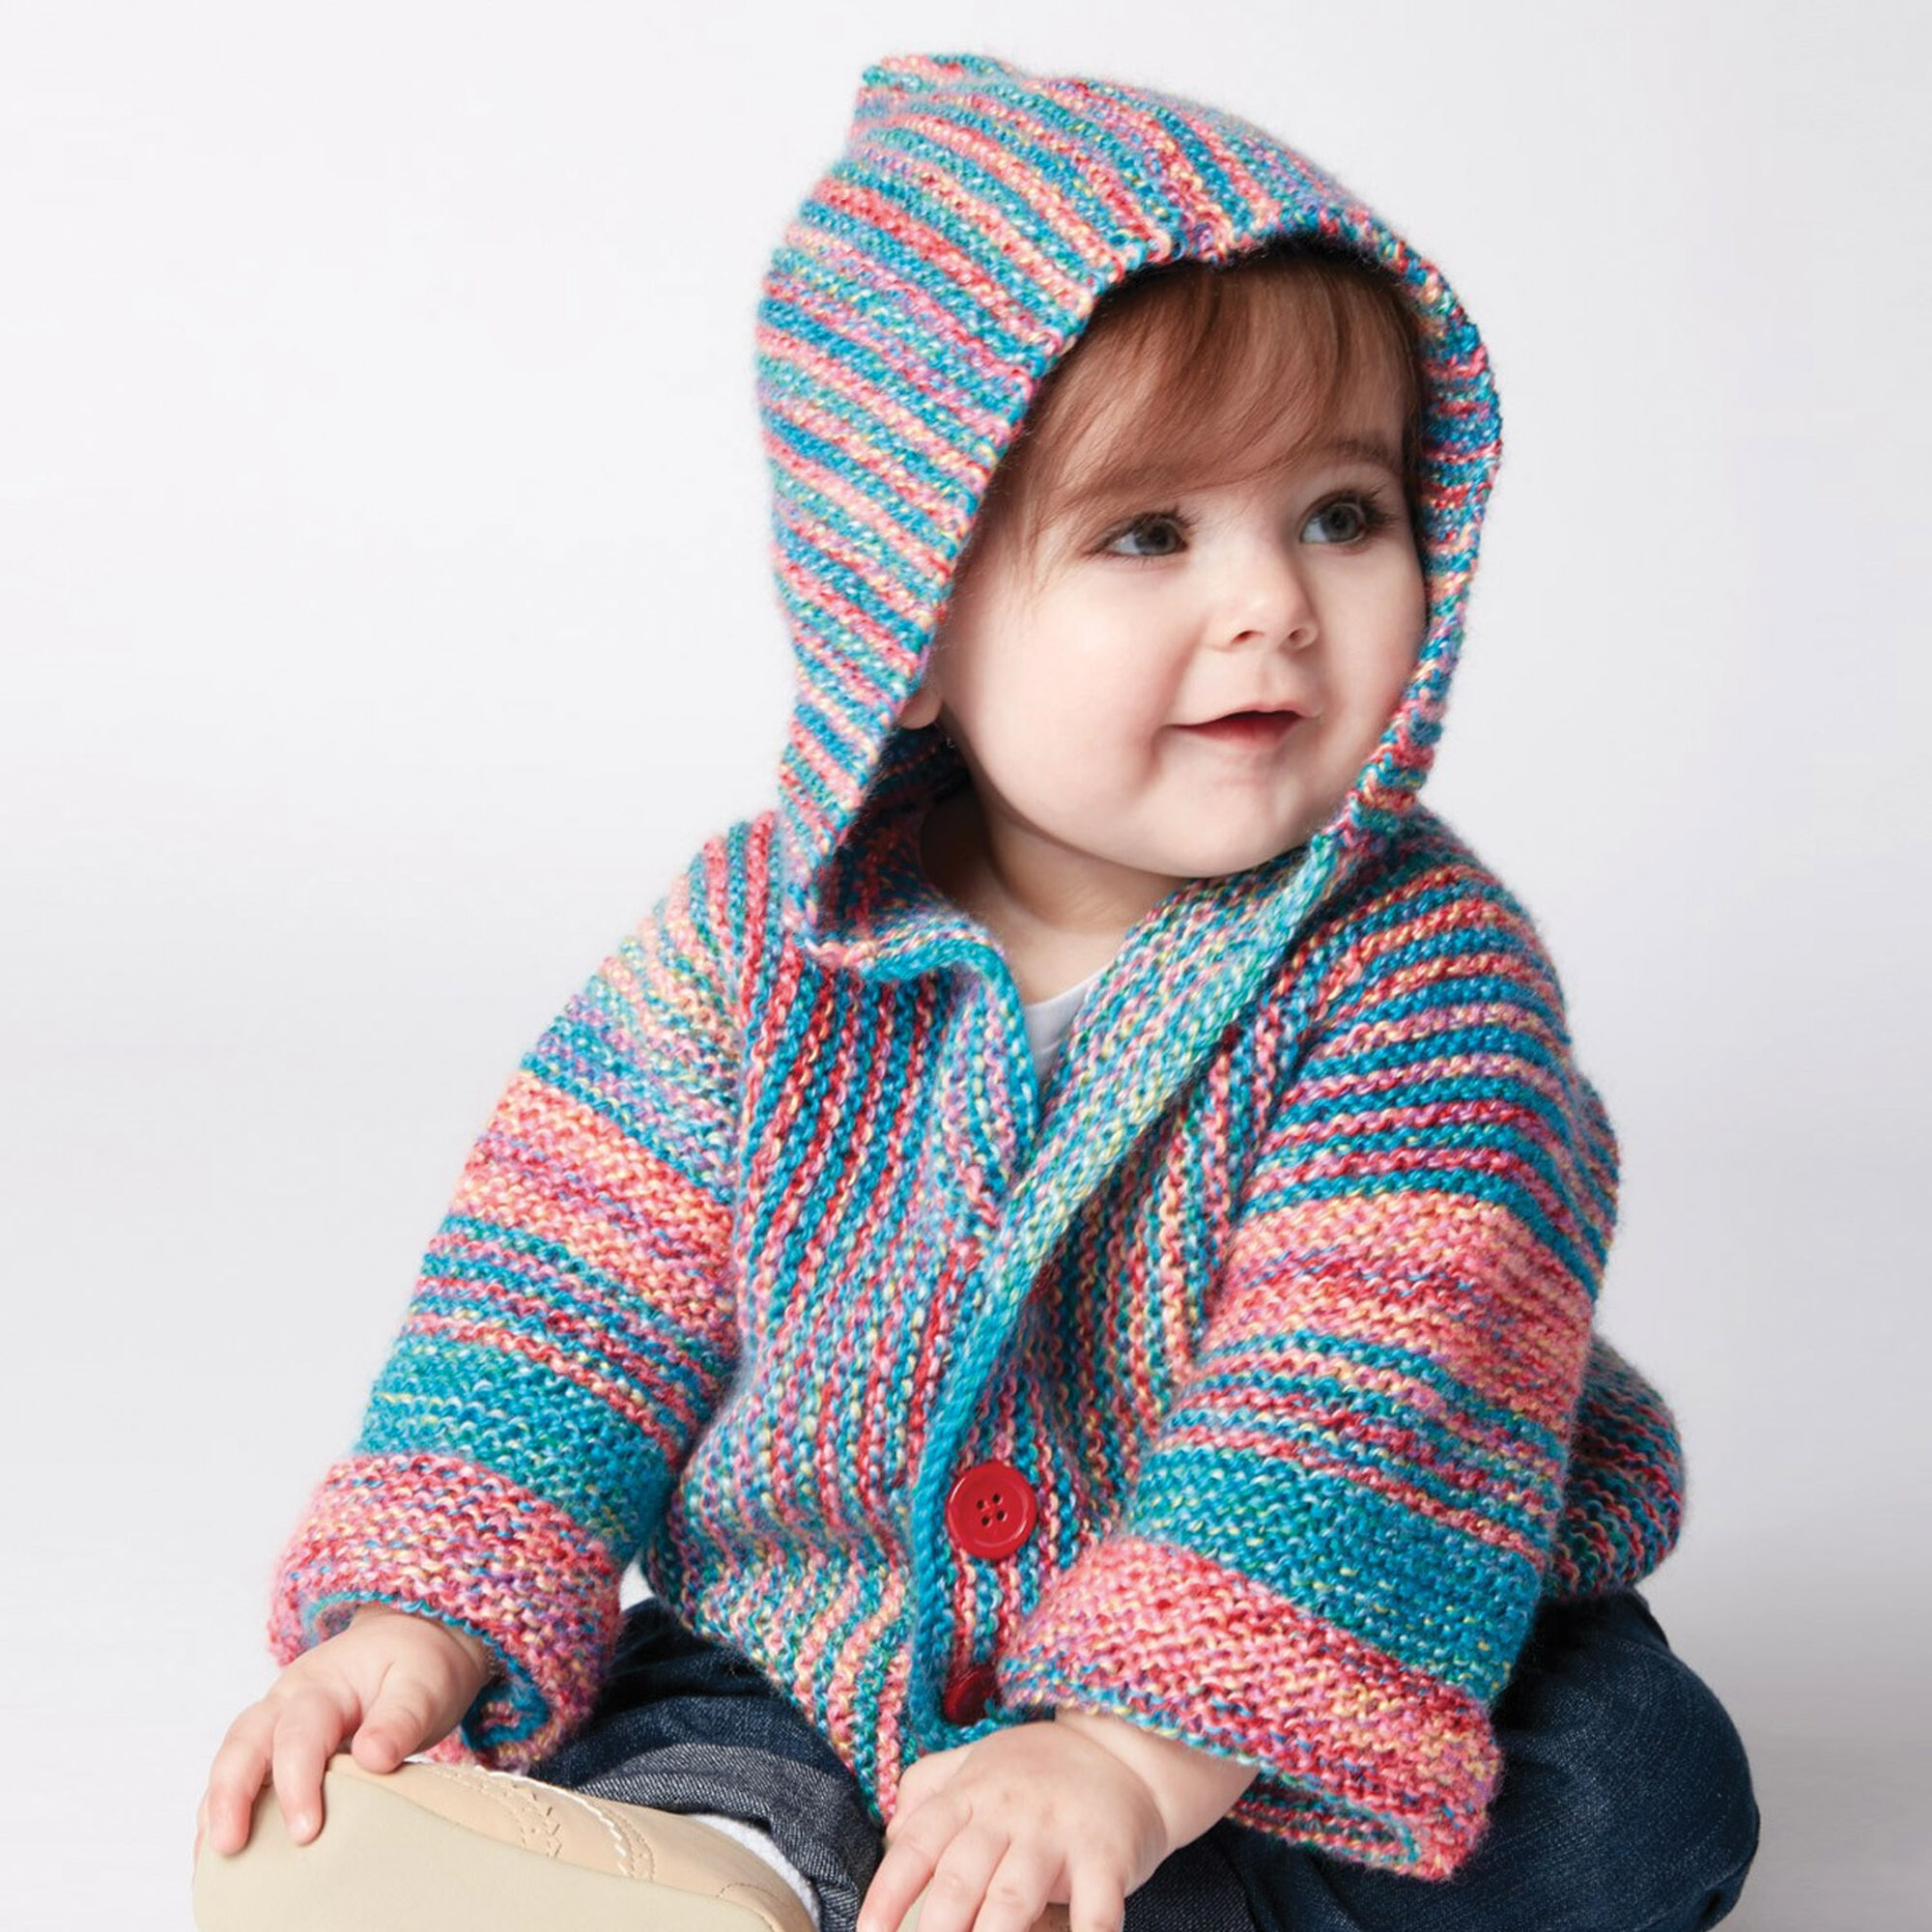 Bernat Show Your Stripes Knit Jacket, 6 mos | Yarnspirations